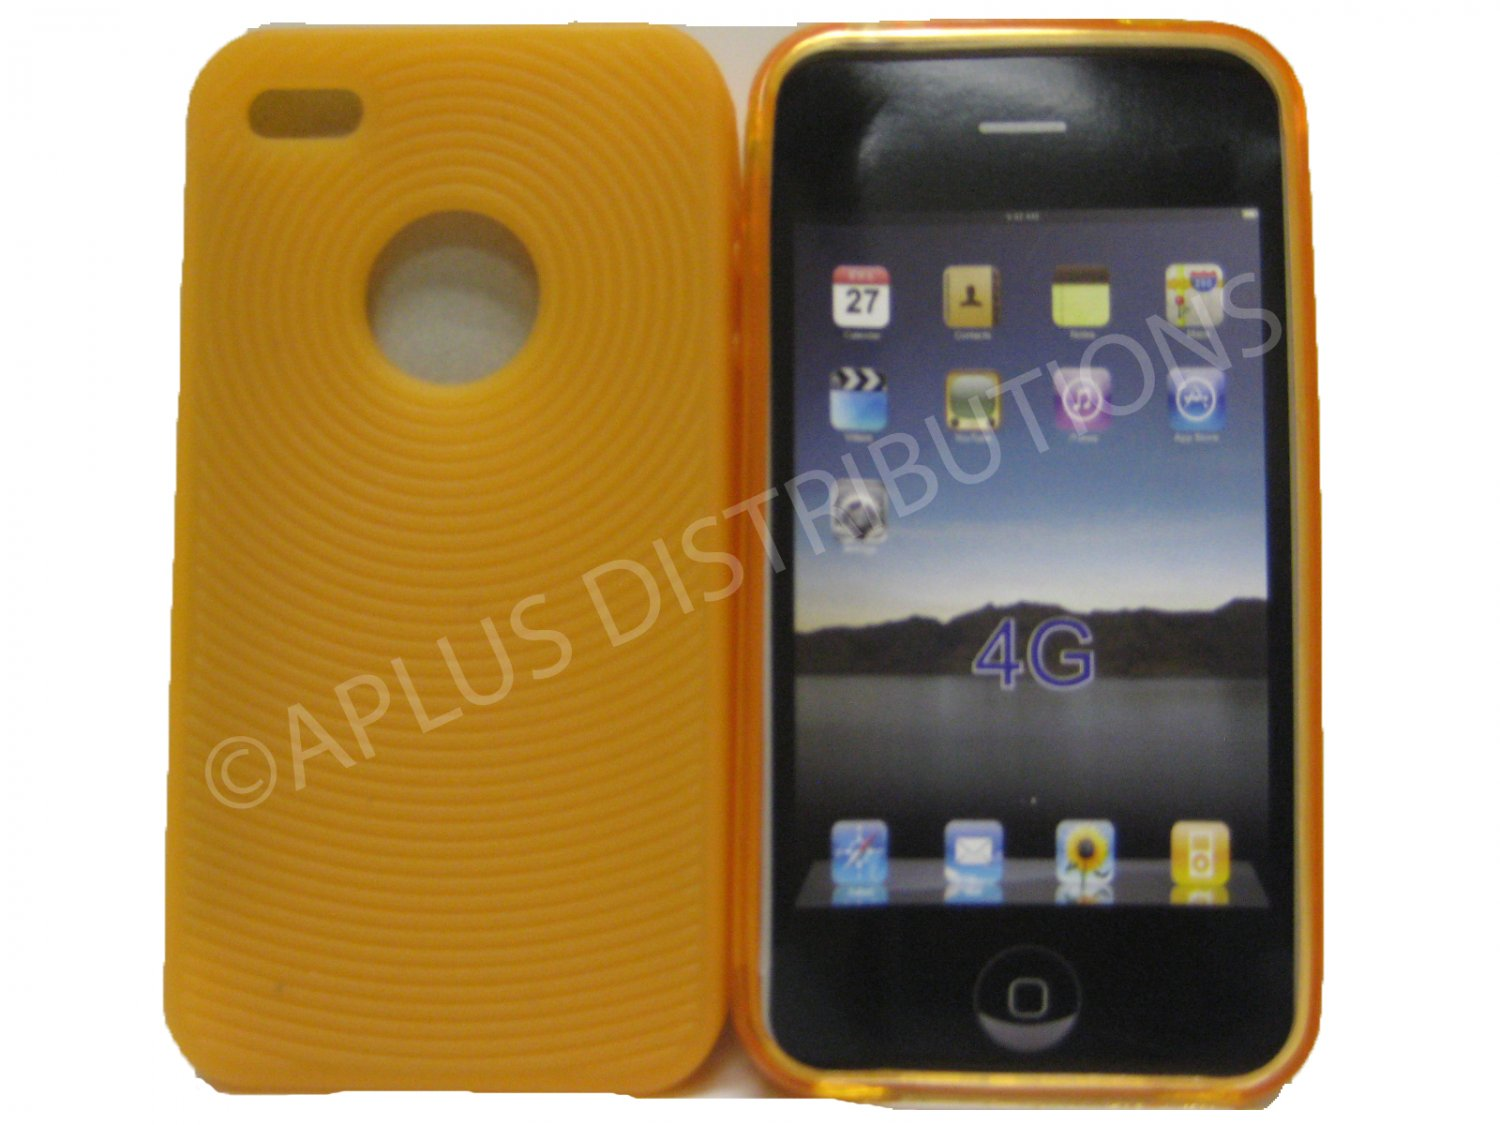 New Orange Thumb Print Pattern Silicone Cover For iPhone 4 - (0002)